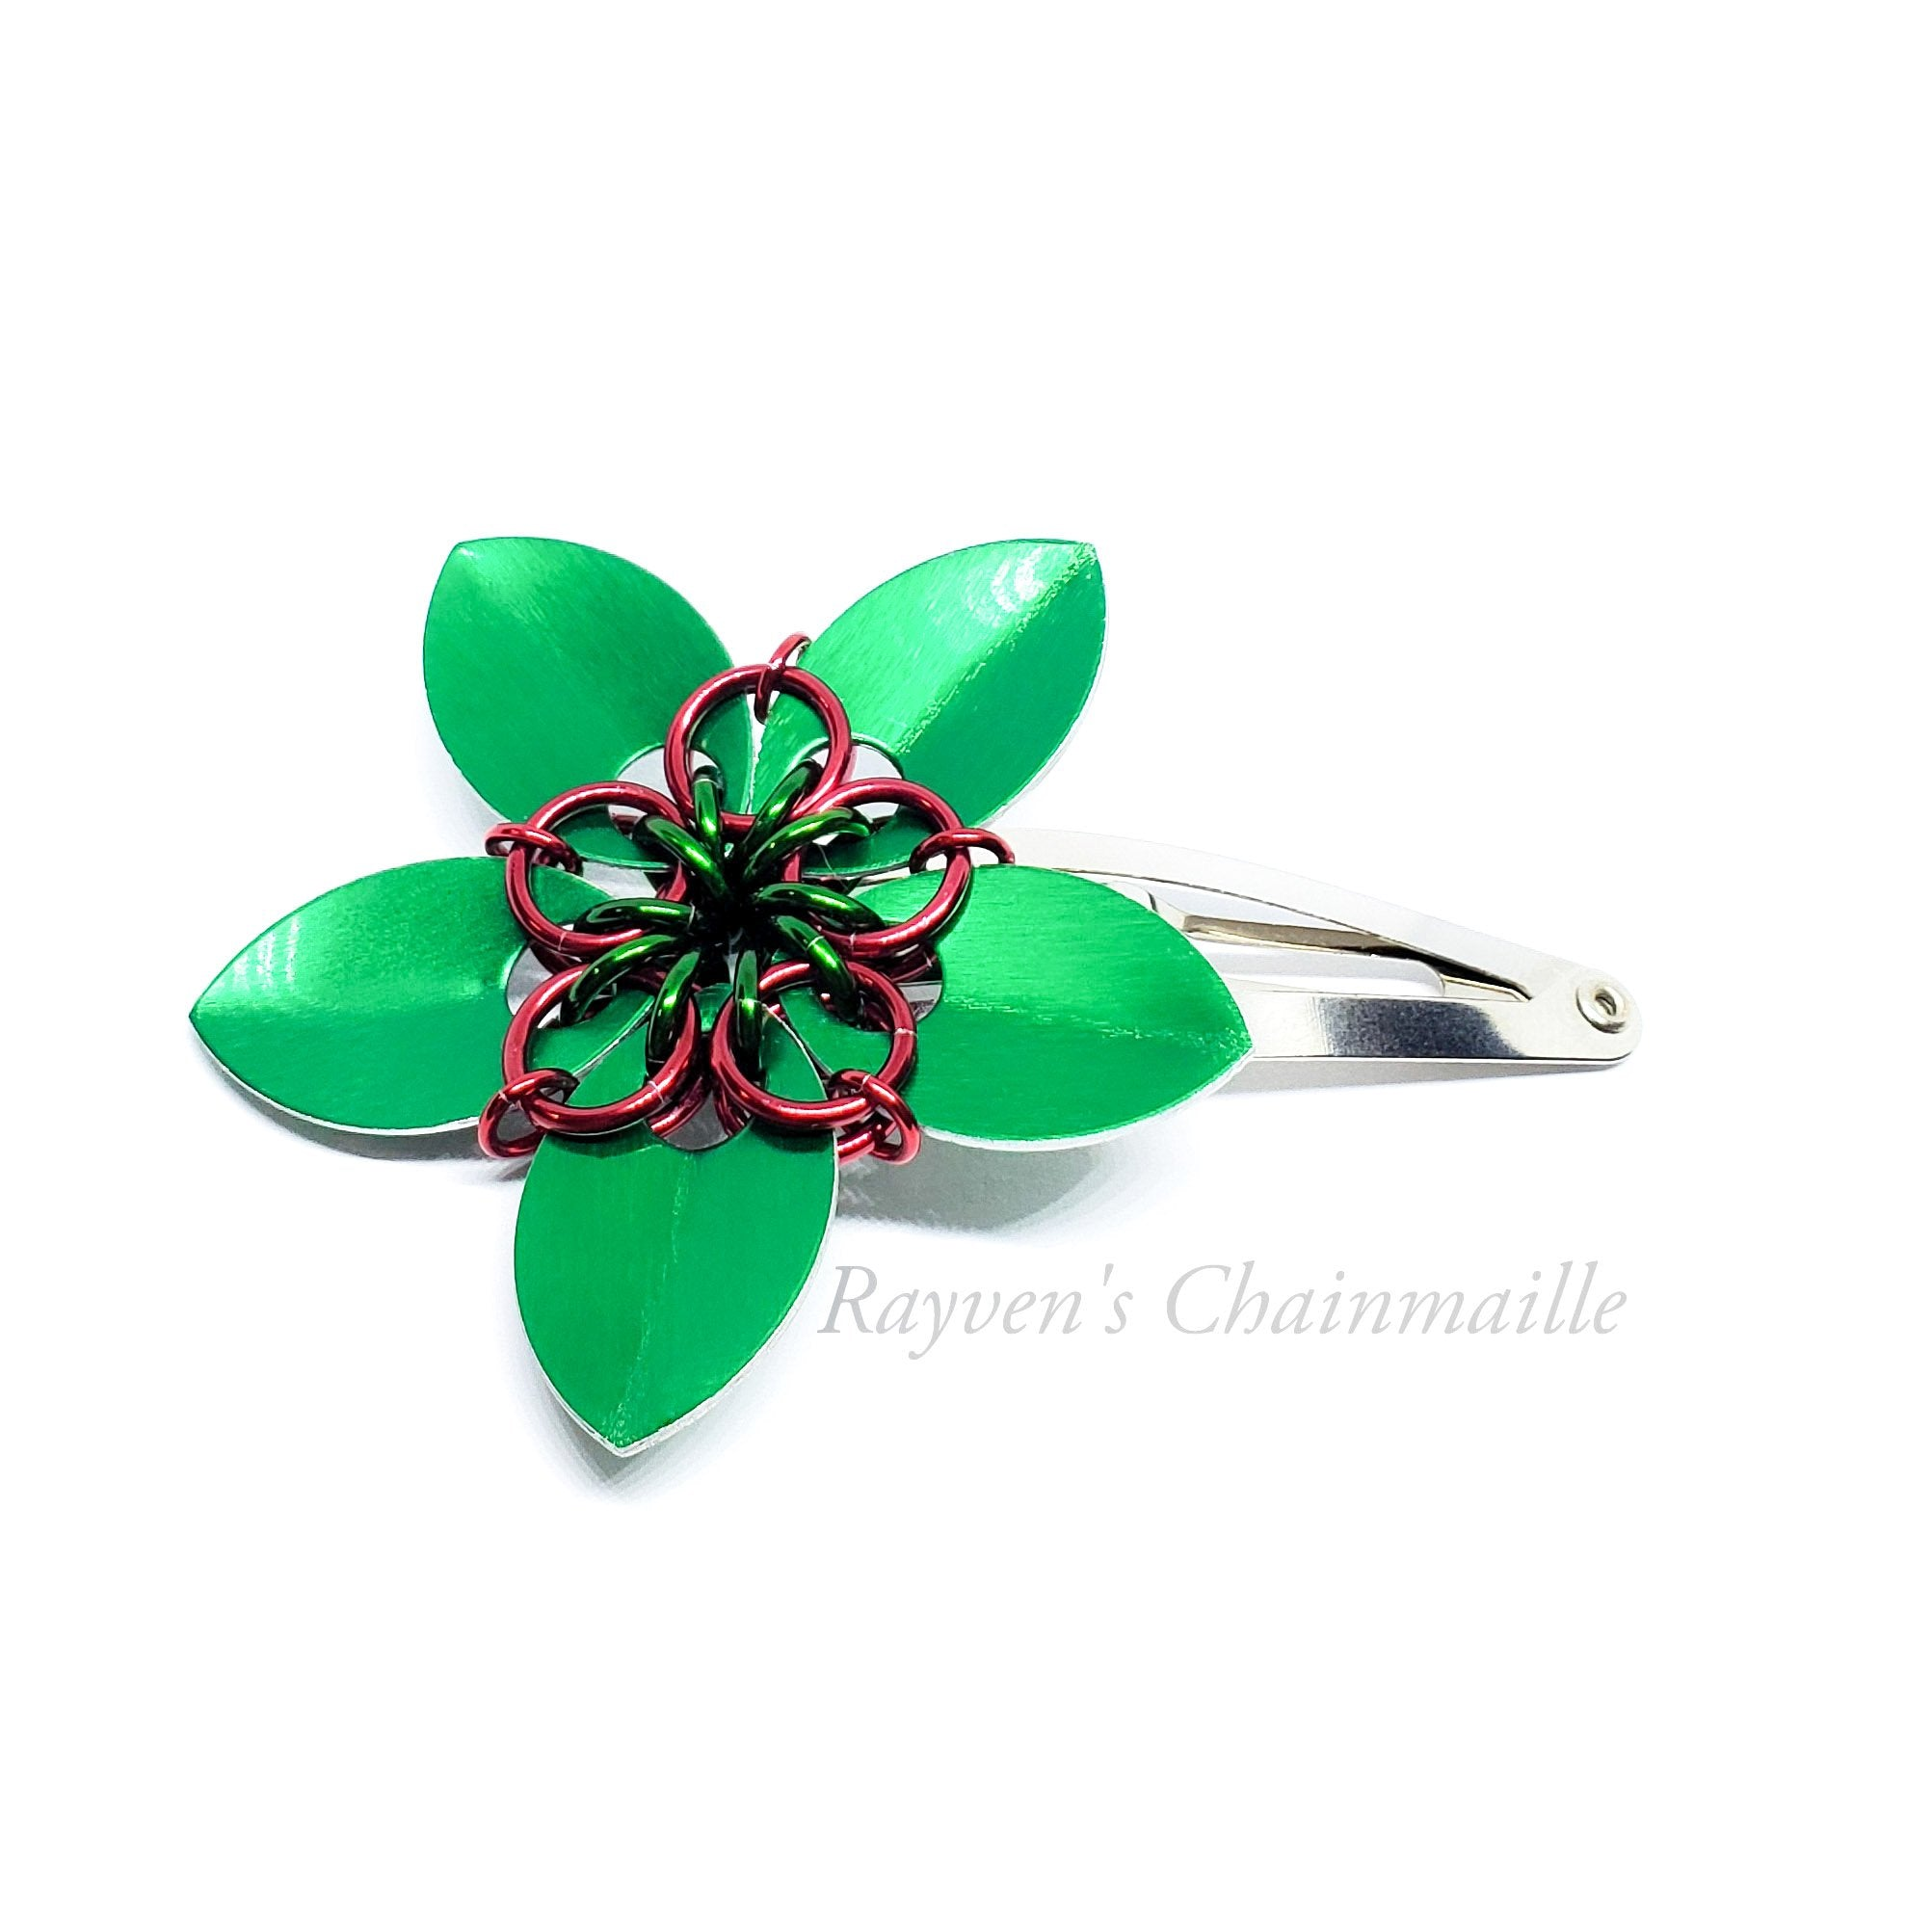 Rayven's Chainmaille - Christmas Scalemaille Flower Hair Clips